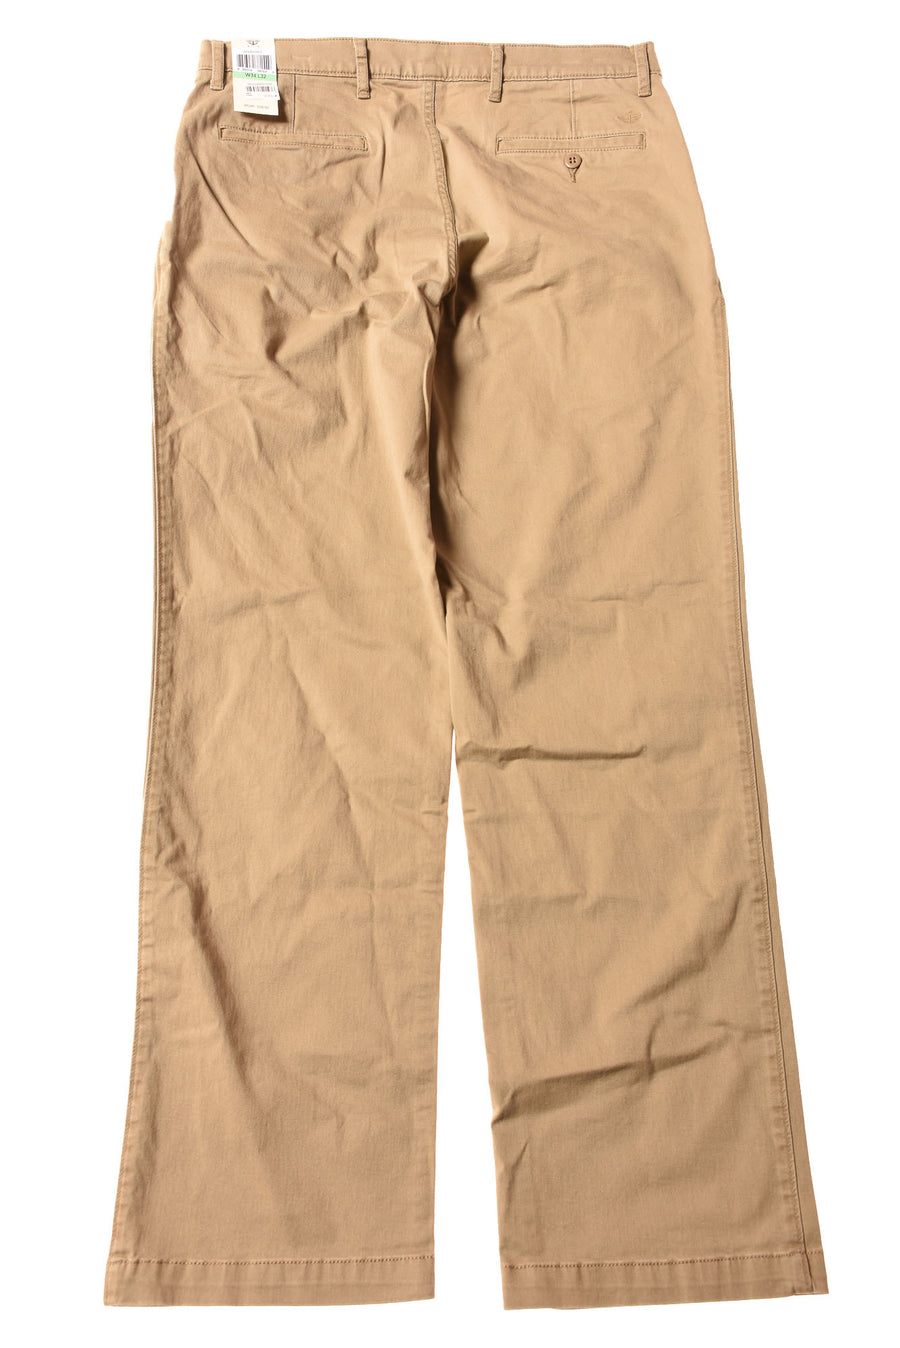 NEW Dockers Men's Pants 34 Khaki